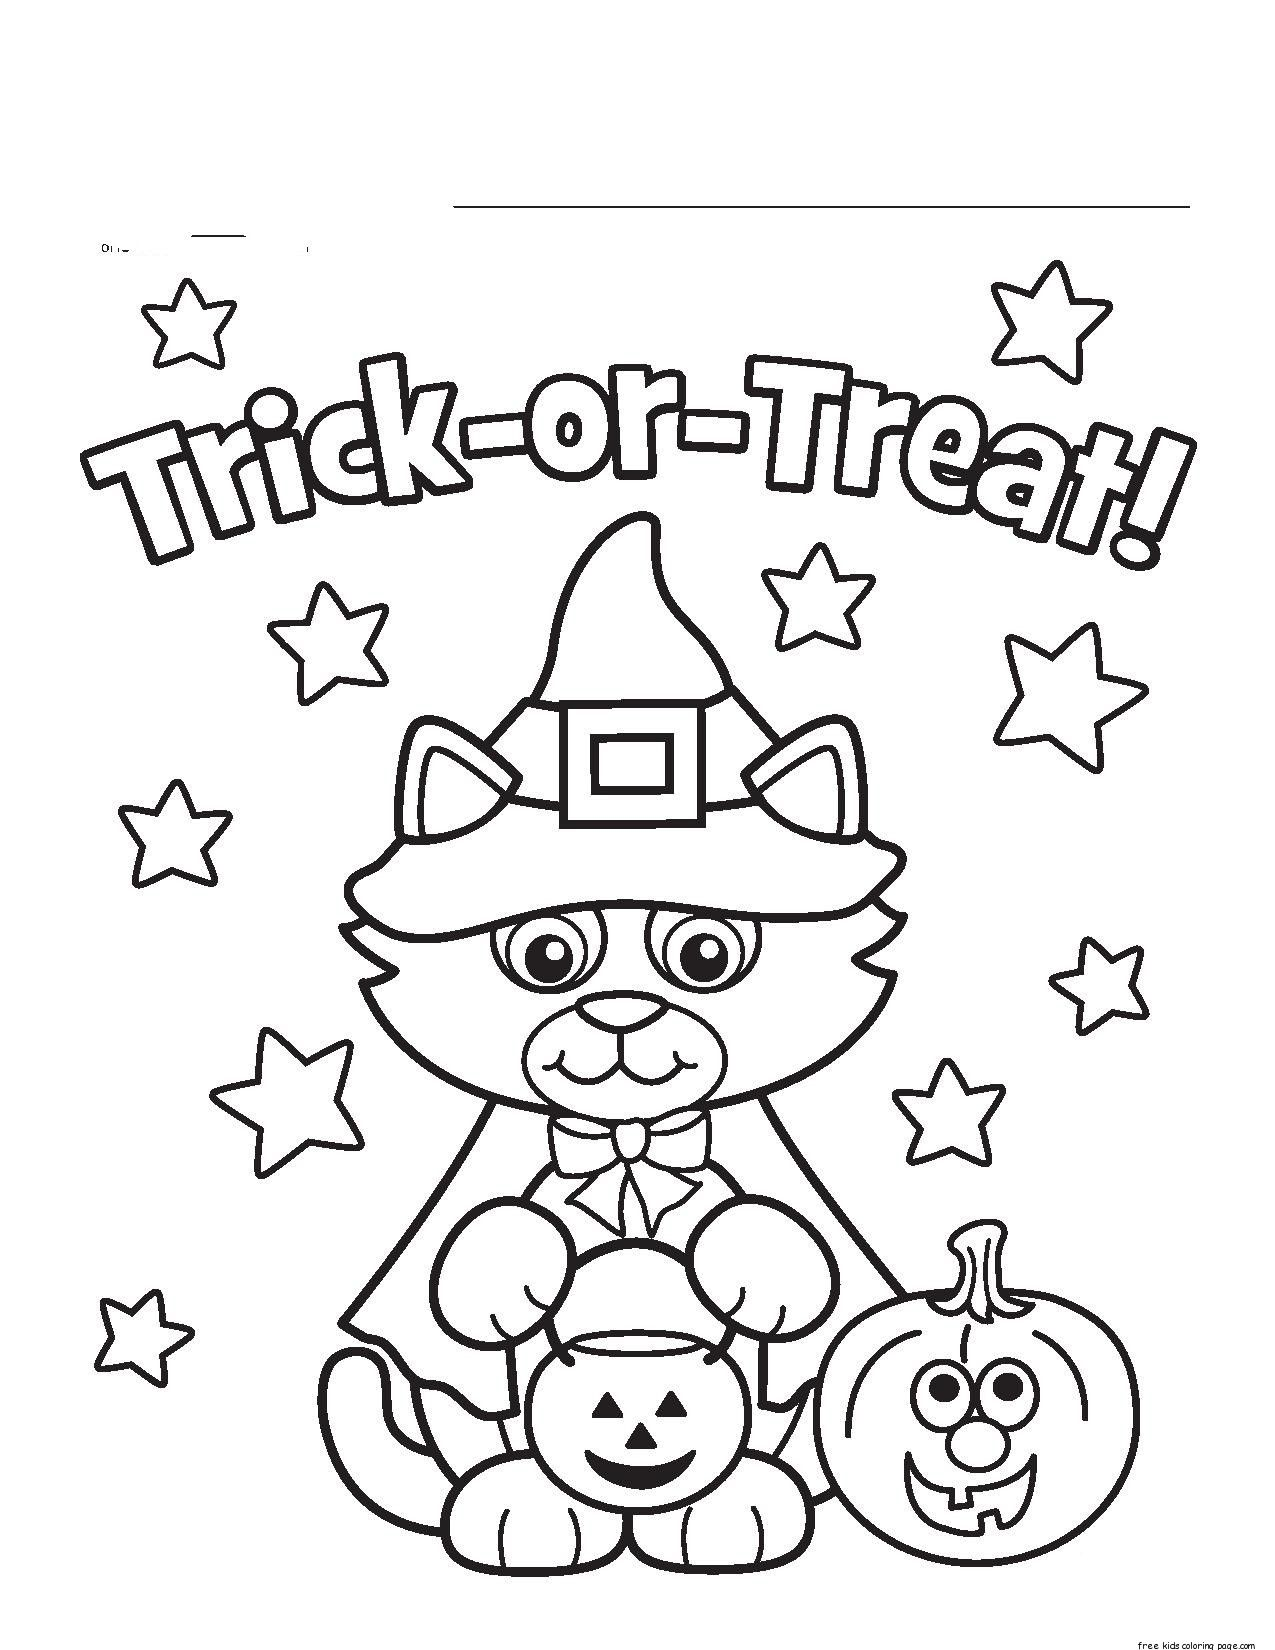 Free colouring pages for 10 year olds - Free Printable Halloween Coloring Pages Kids Halloween The Festival Of Candies Taking Disguises